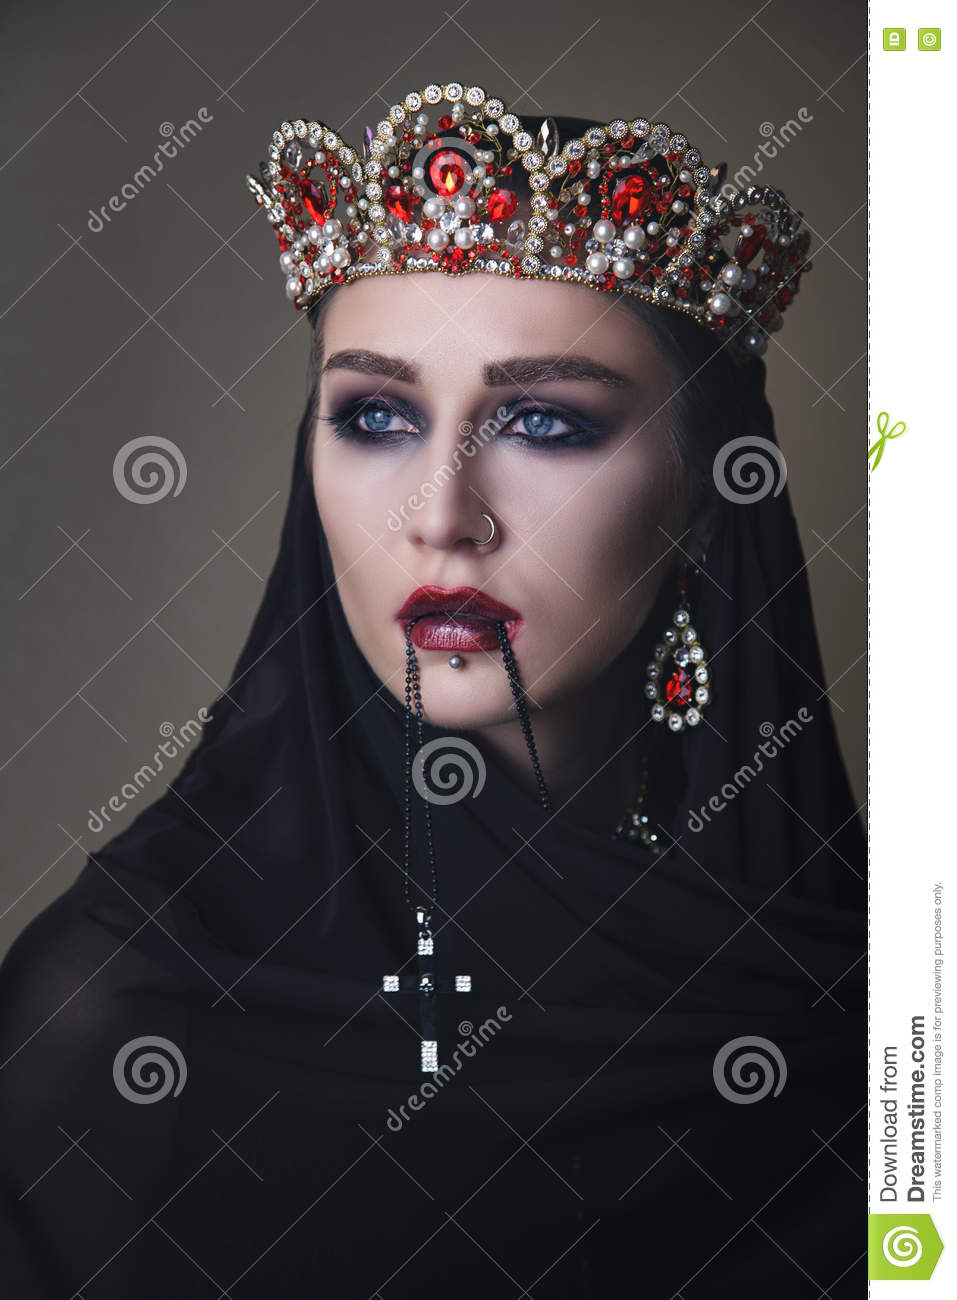 Black queen in a crown and with a crucifix